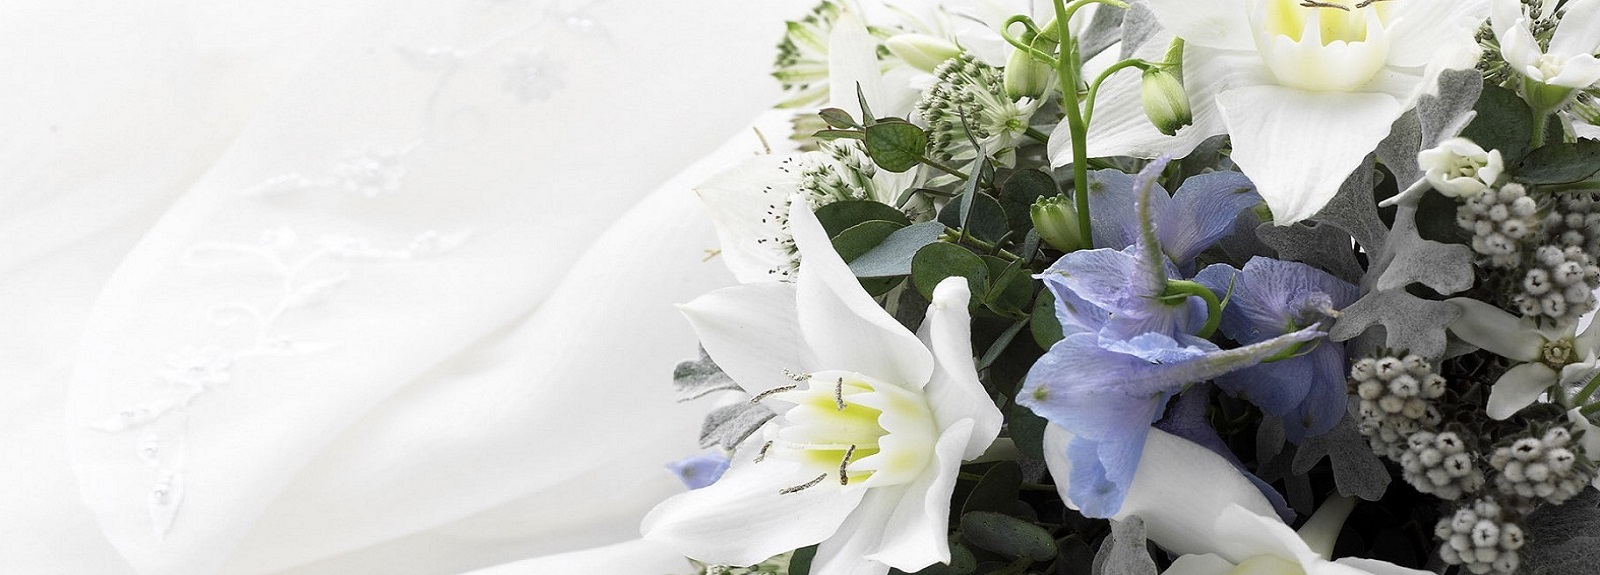 Florist Maine | Wedding Flowers | All Occasion Flowers | Vacations and Weddings in Maine